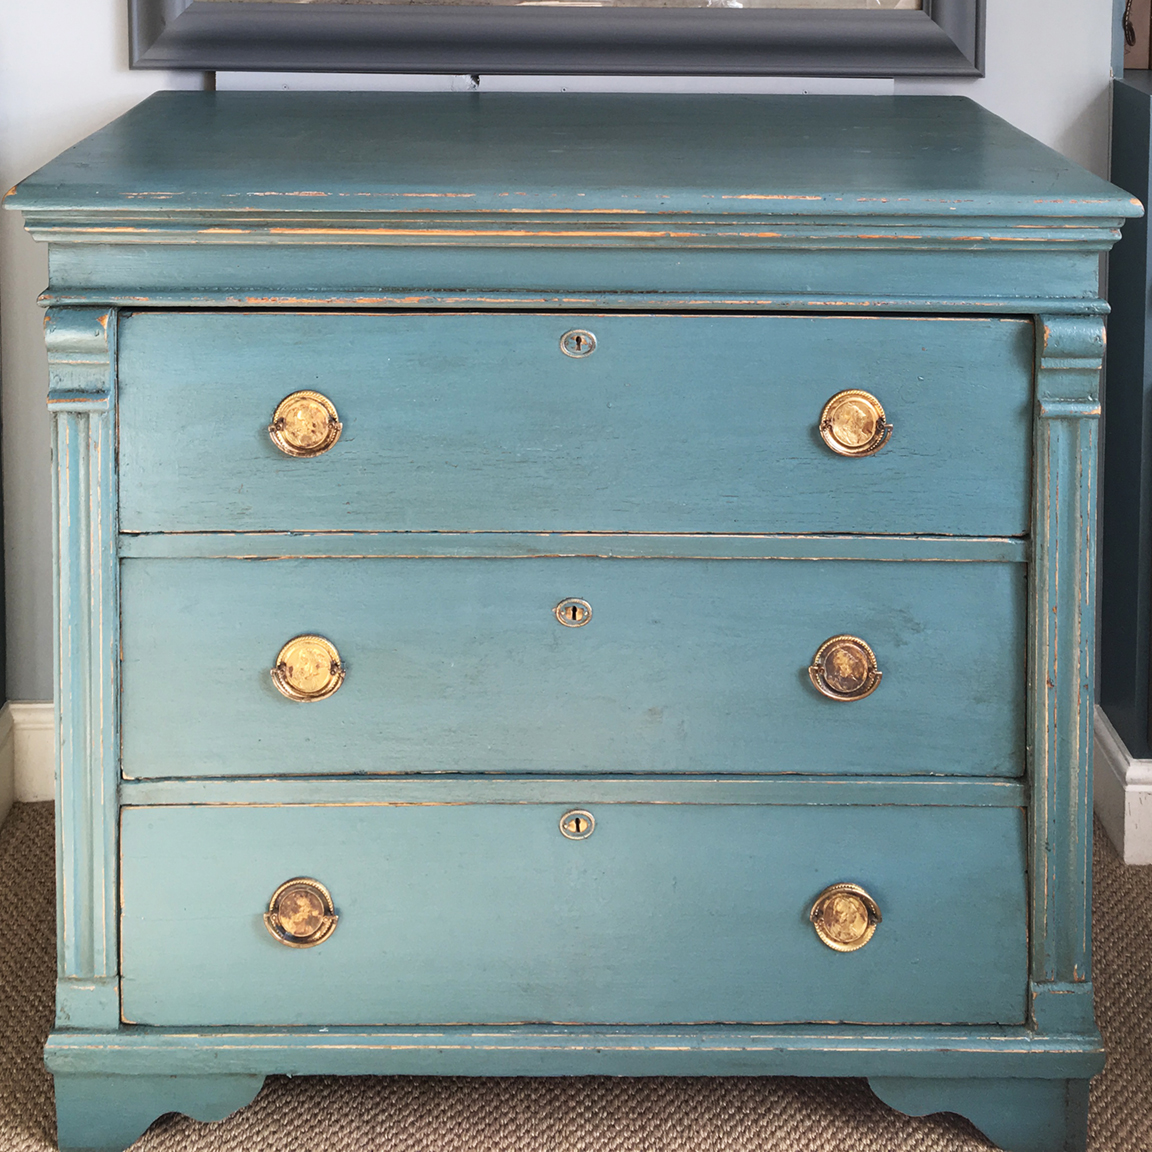 Antique chest of drawers painted teal